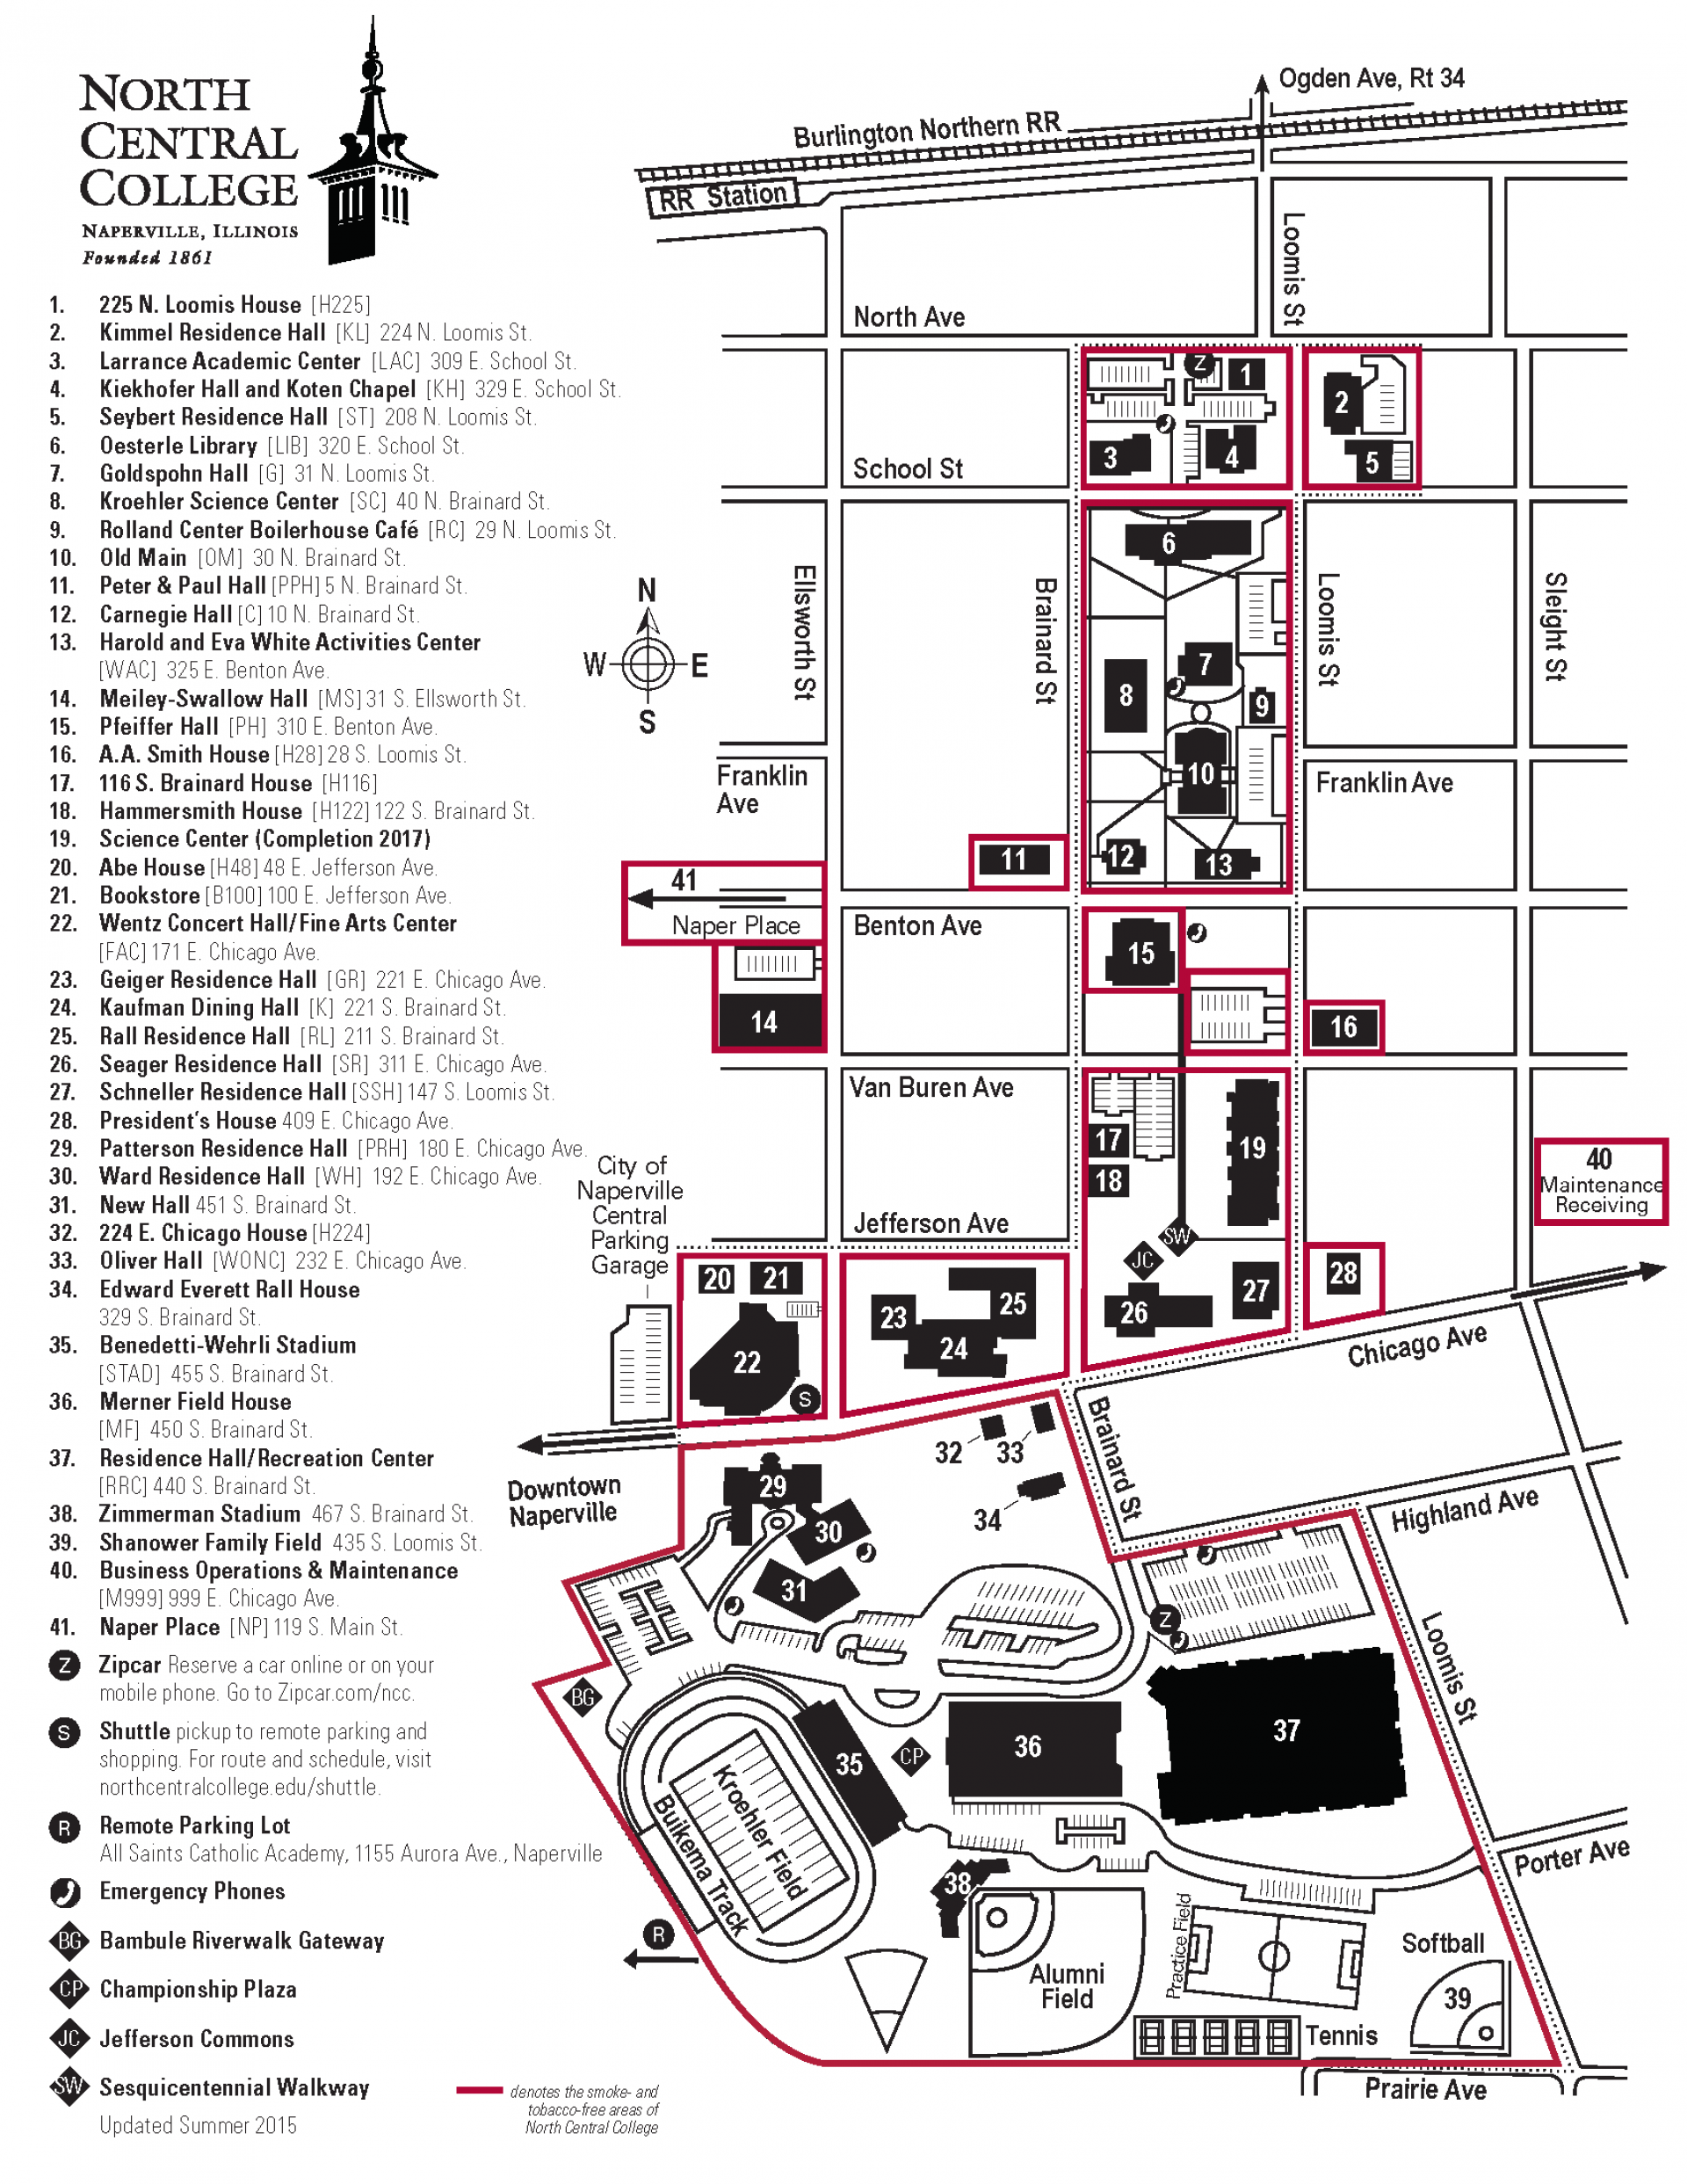 Heidelberg University Campus Map.Smoke And Tobacco Free Campus Map North Central College